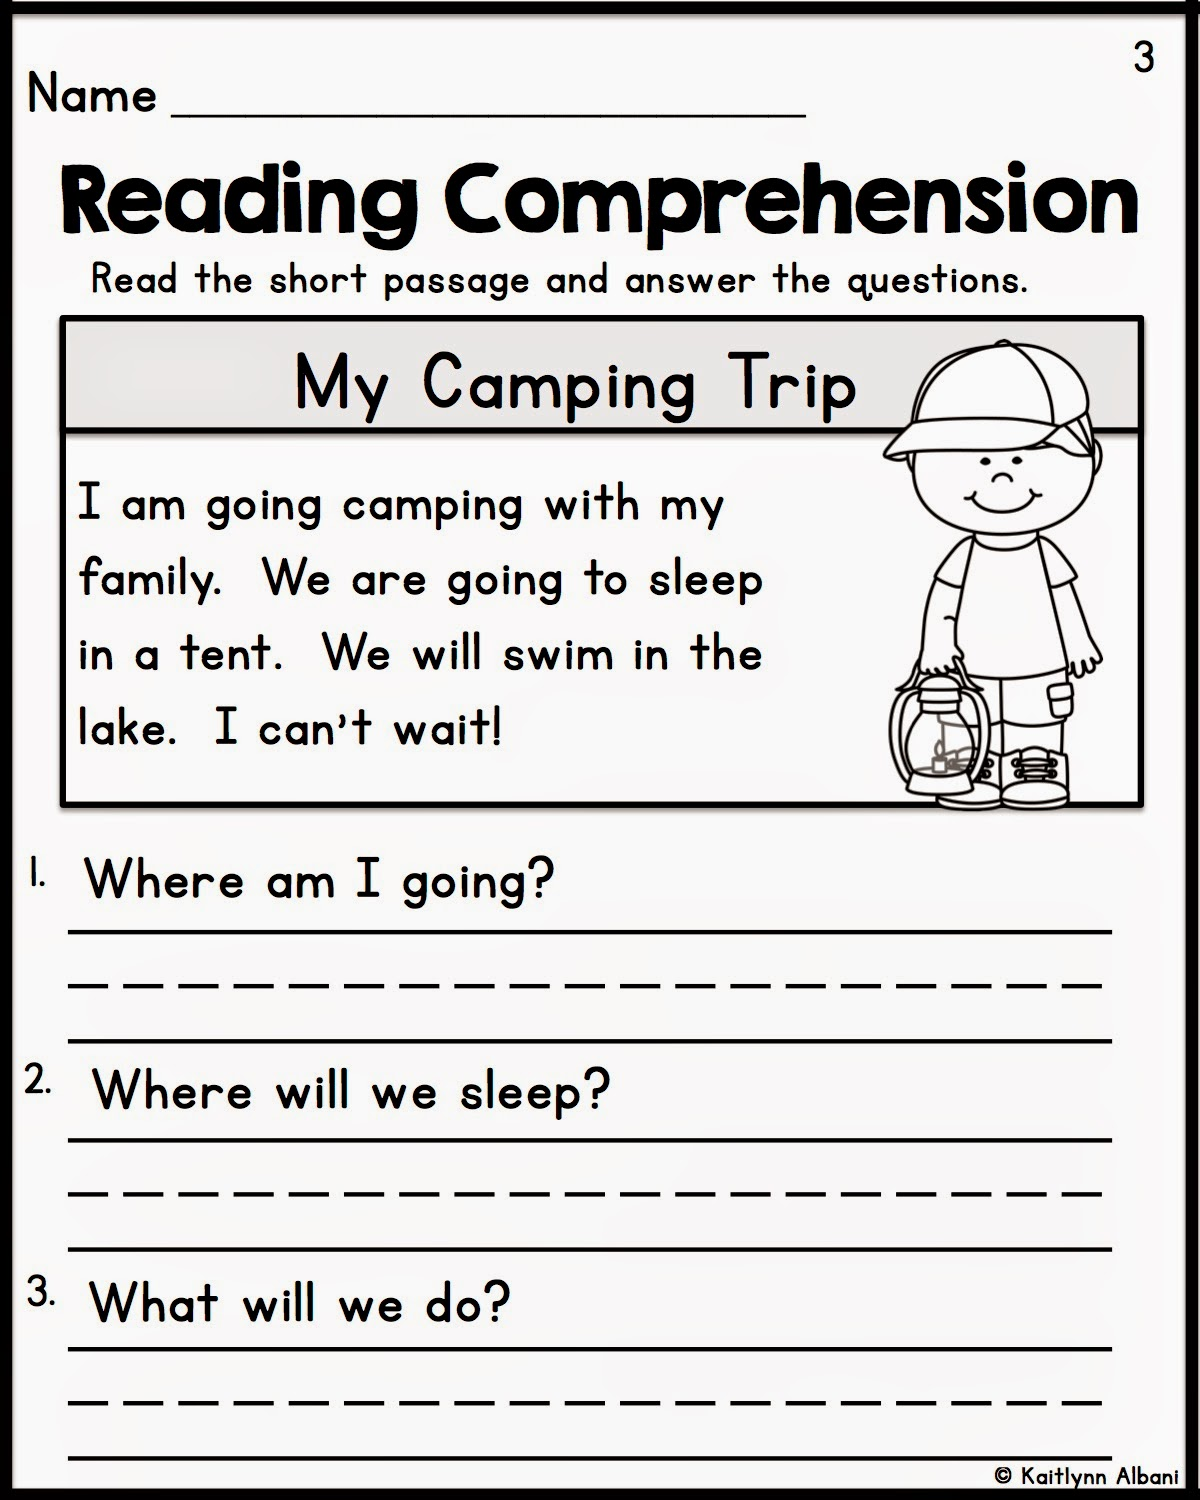 Worksheet Printable Reading Test worksheet reading comprehension test worksheets mikyu free printable divisibility rules for grade 1 coffemix